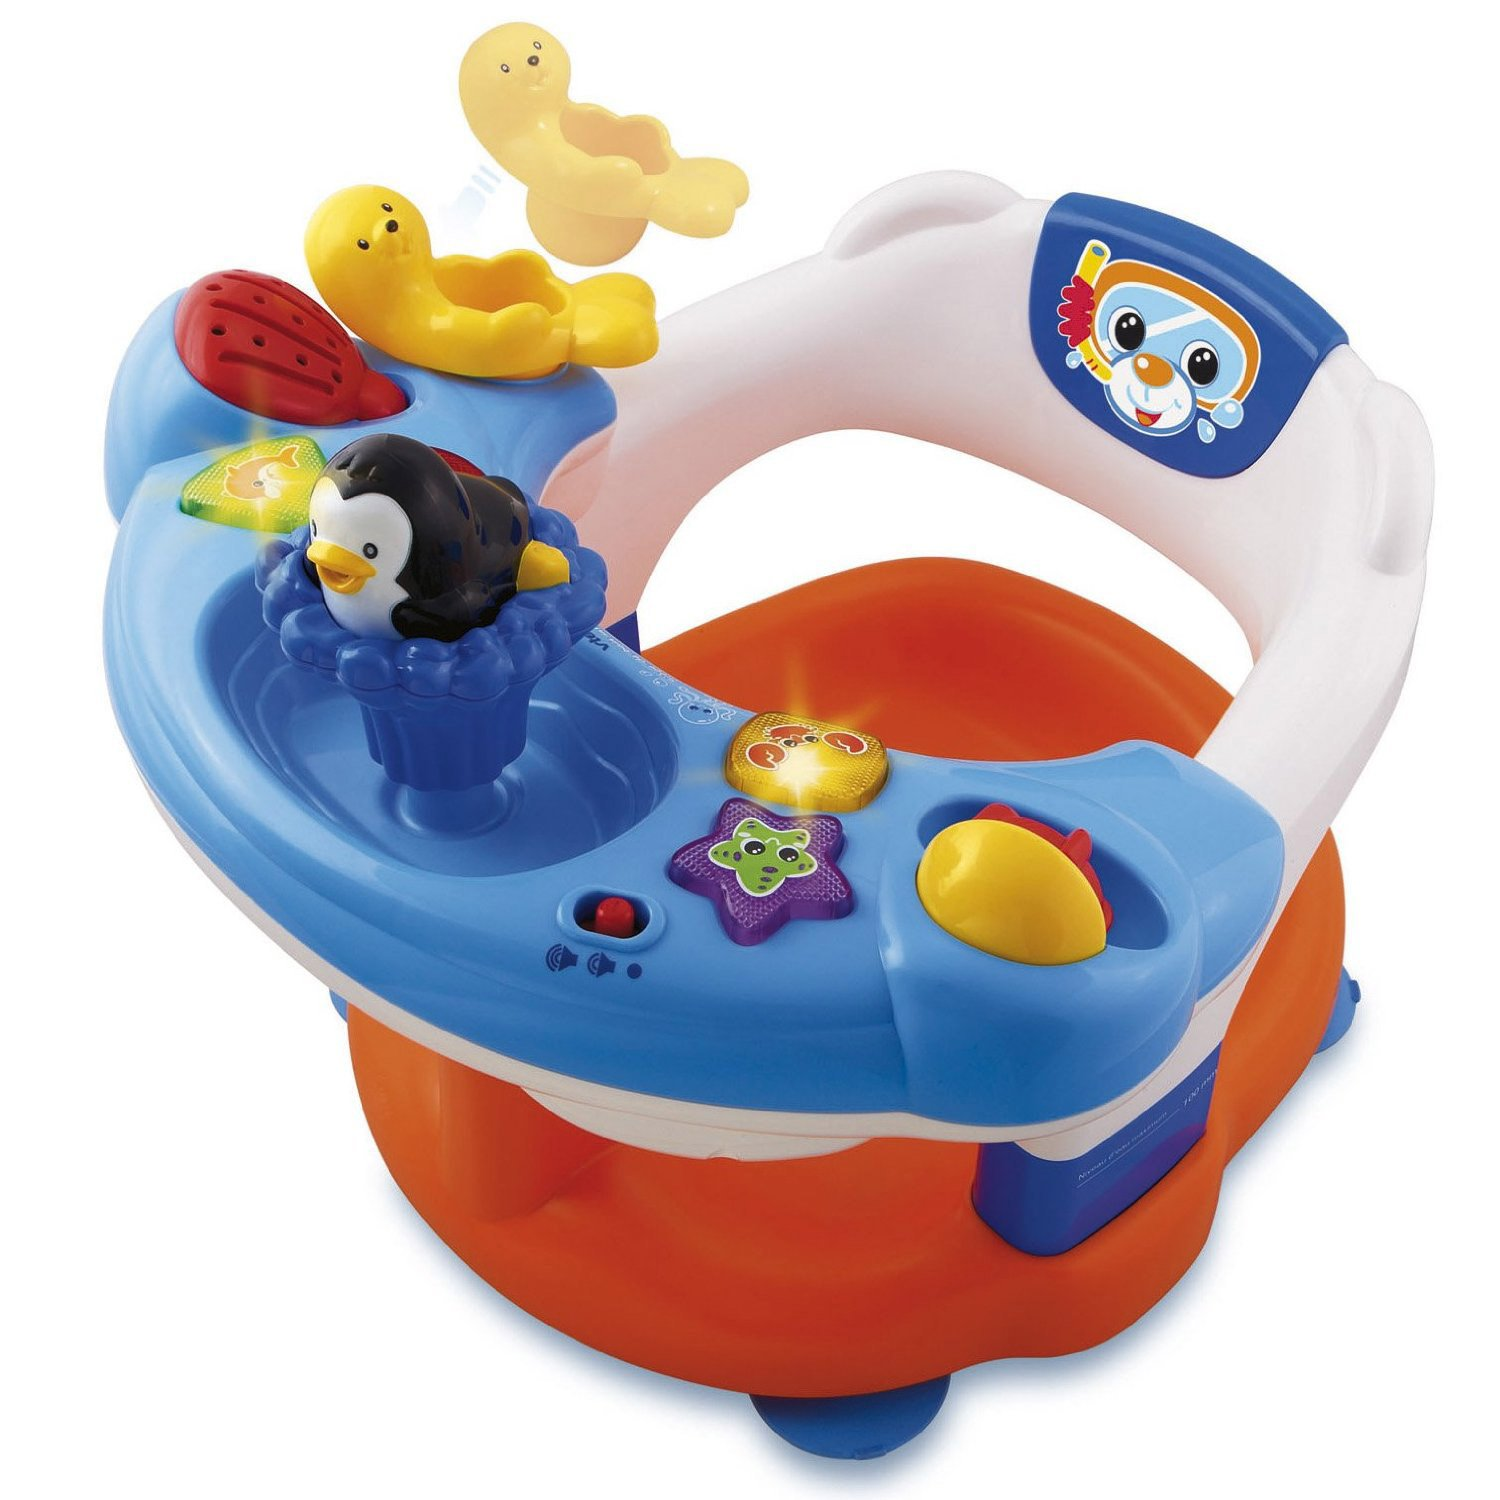 Bain 1 Interactif De 2 Siège En VtechFauteuilsAubert HD2WE9I